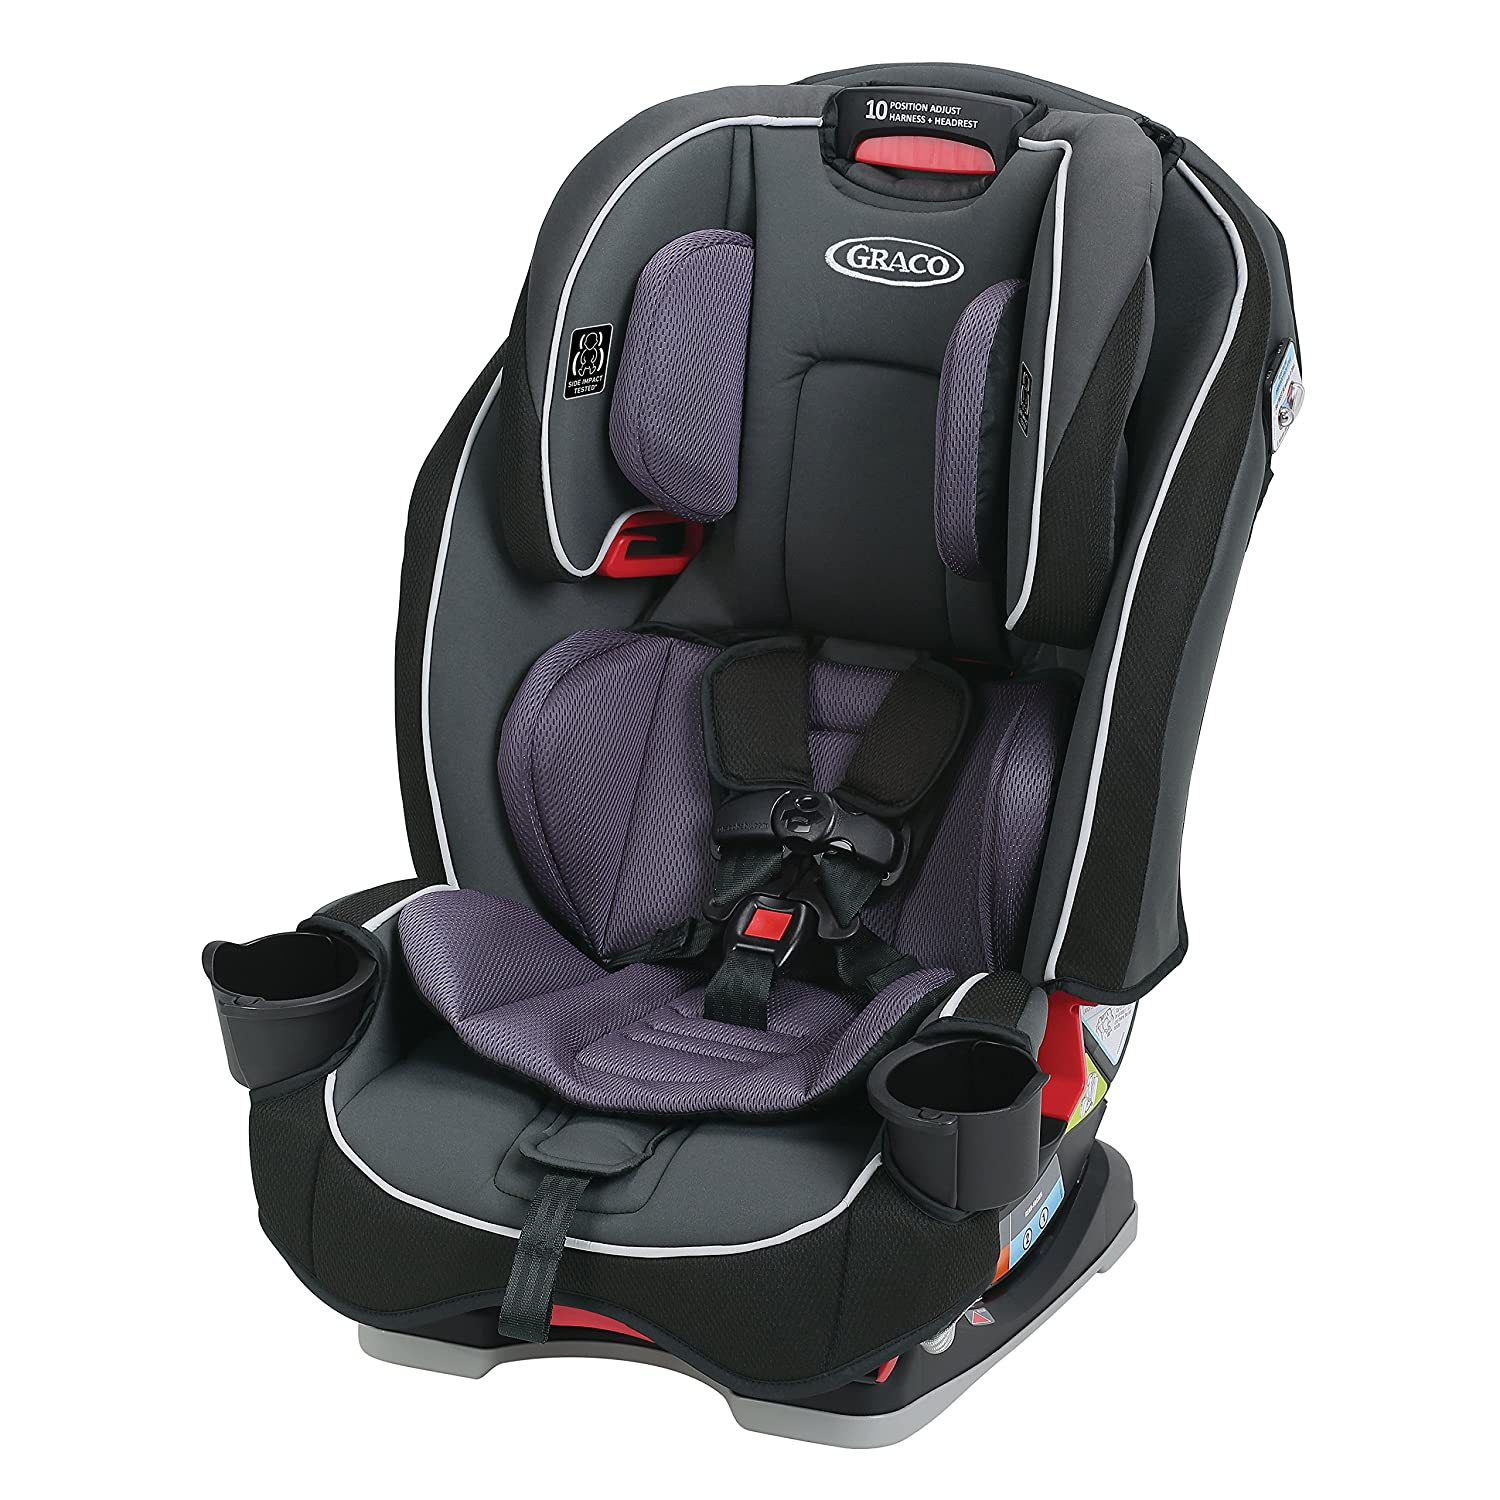 Graco SlimFit 3 in 1 Convertible Car Seat | Infant to Toddler Car Seat, Saves Space in your Back Seat, Annabelle